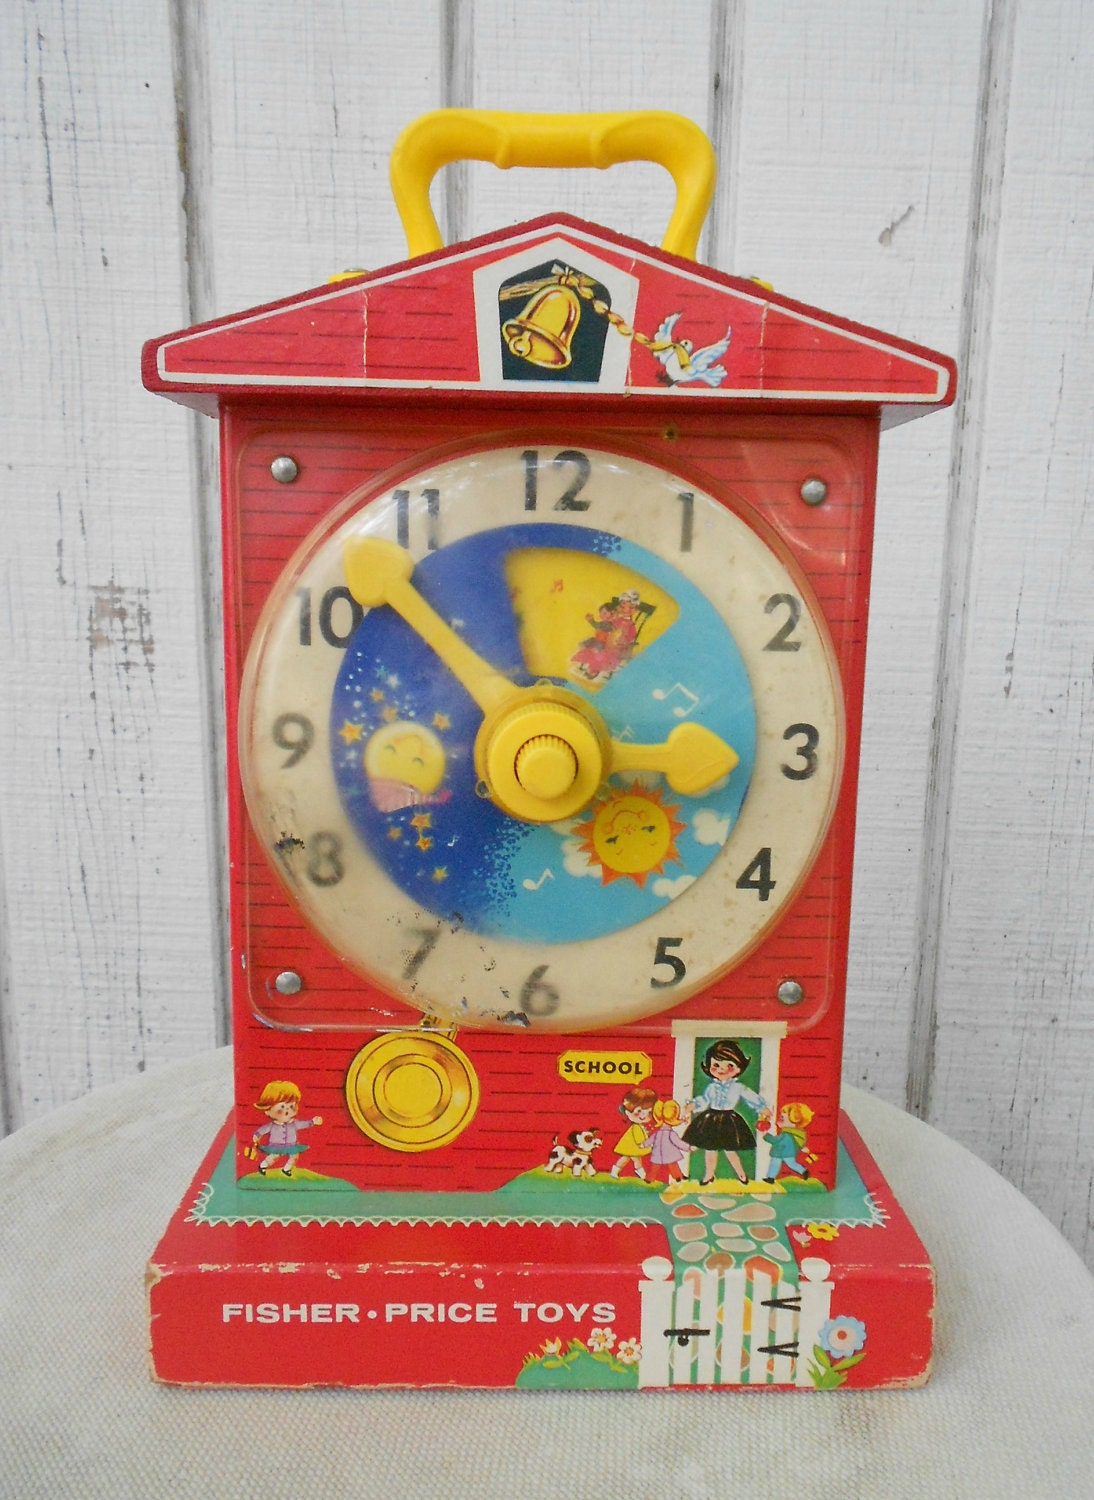 60 S Toys : Fisher price toy clock vintage s child teaching